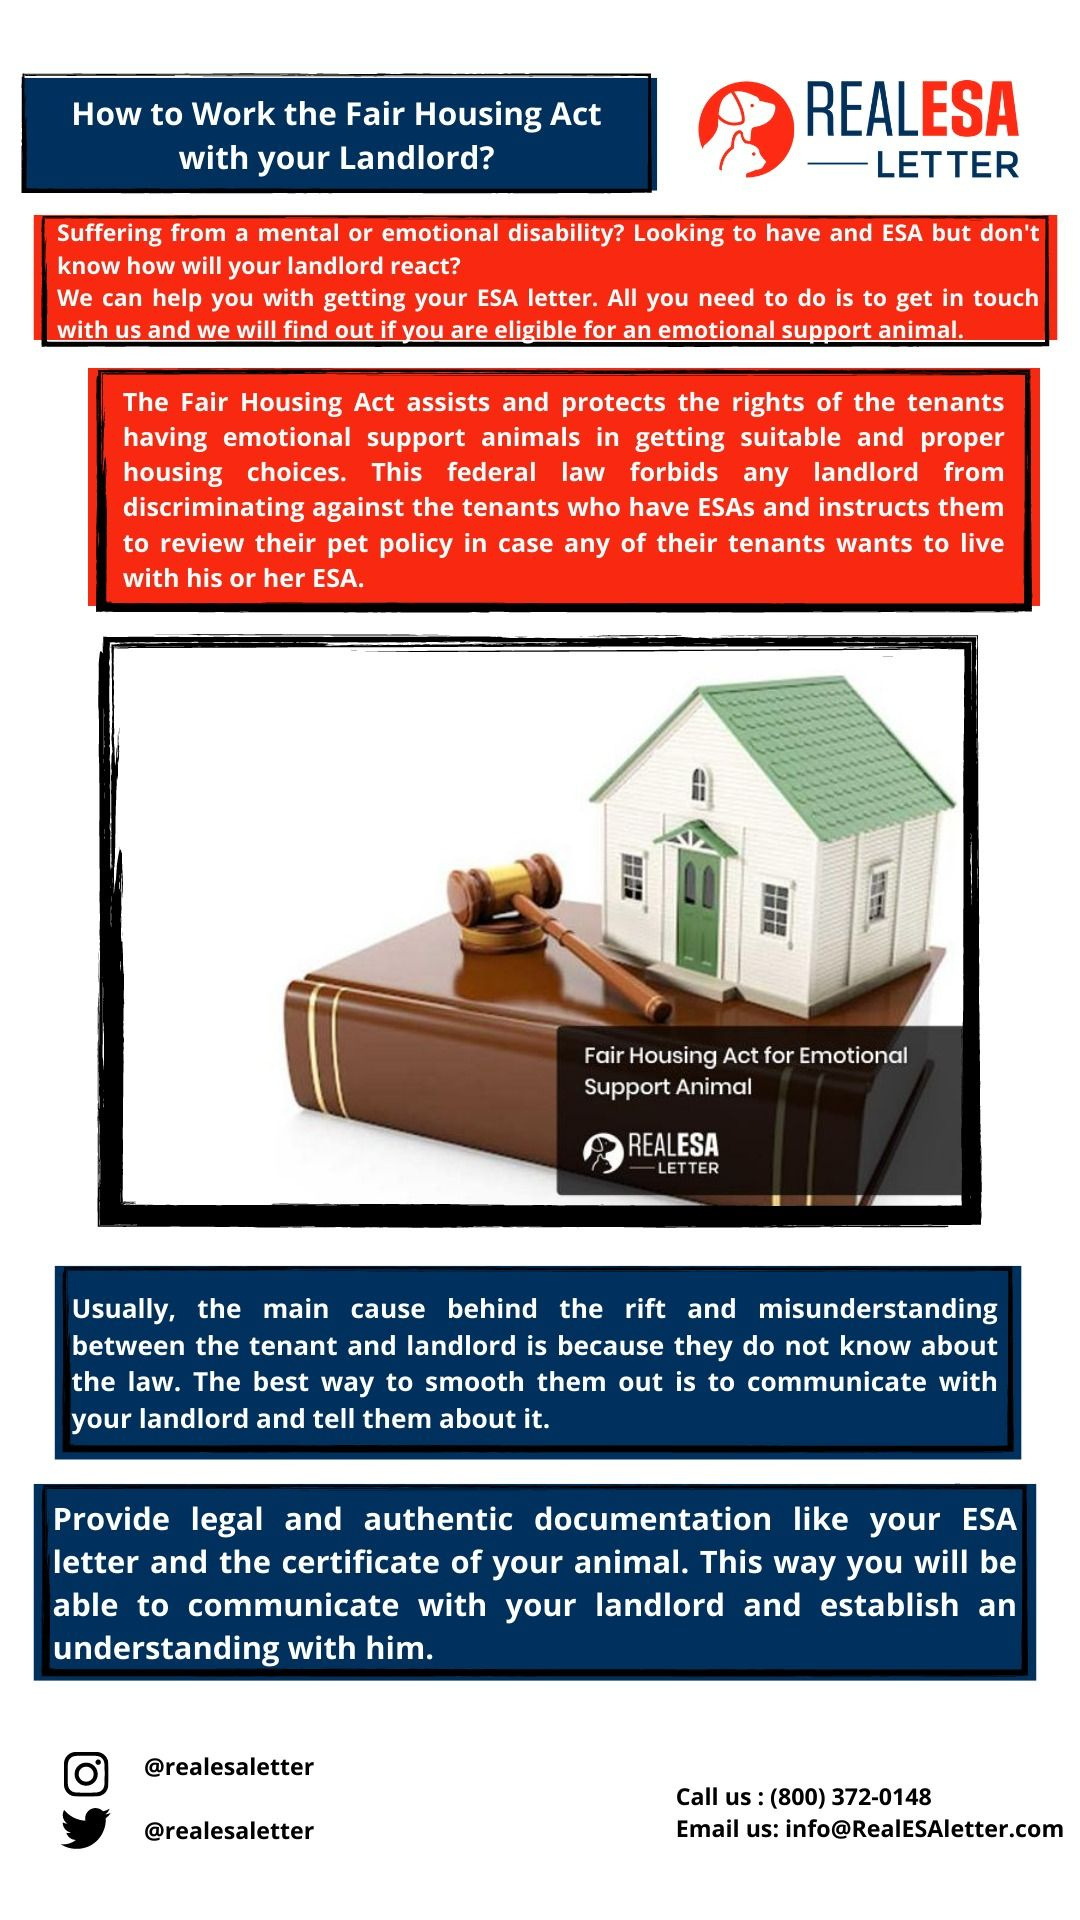 Fair Housing Act For Emotional Support Animal Emotional Support Emotional Support Animal Support Animal